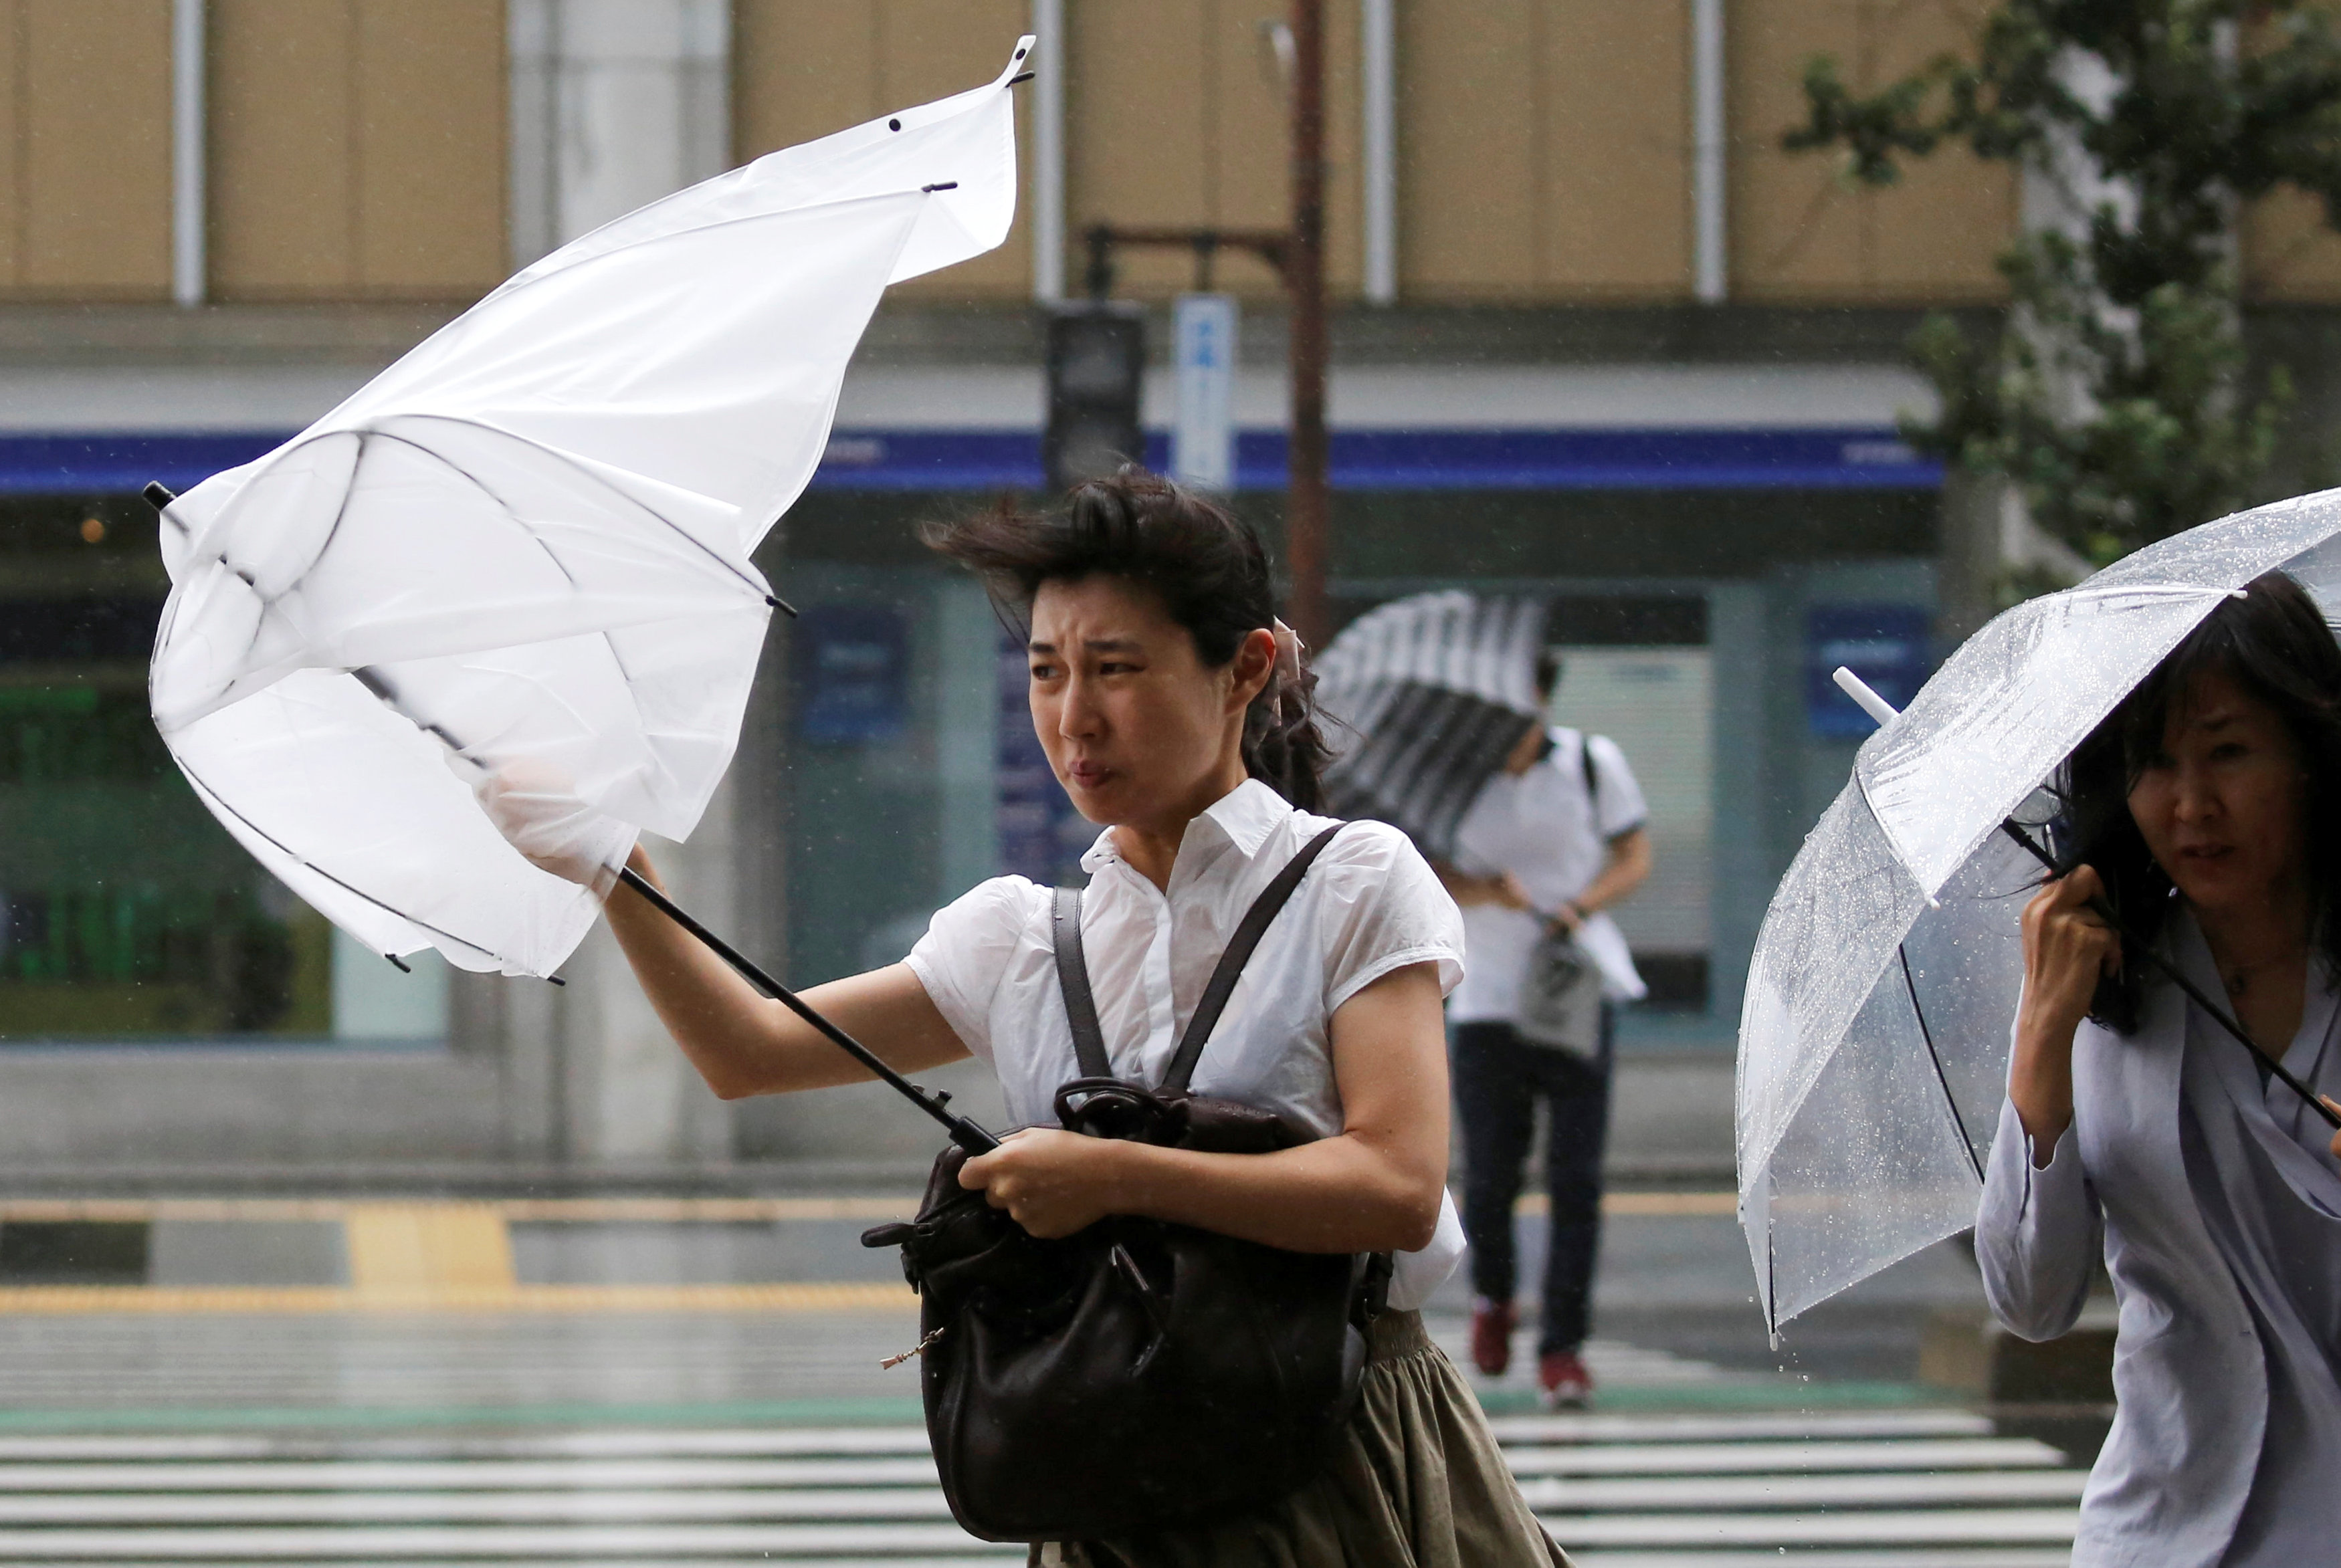 Passersby using umbrellas struggle against a heavy rain and wind as Typhoon Shanshan approaches Japan's mainland in Tokyo